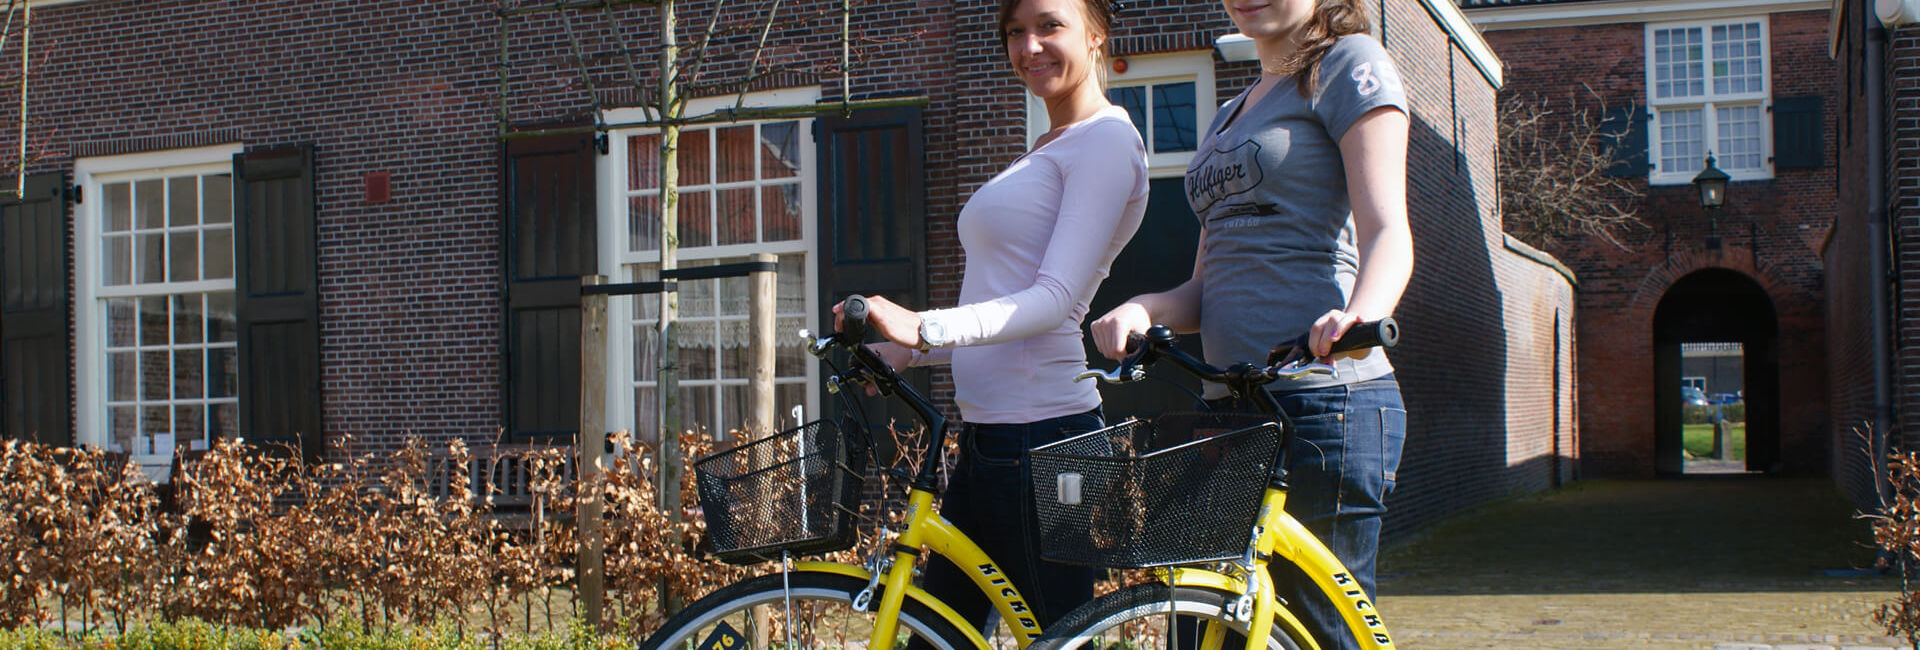 Our yellow kickbikes - Kickbike Puzzle Hunt 'Rolling though Delft' Gasterij 't Karrewiel